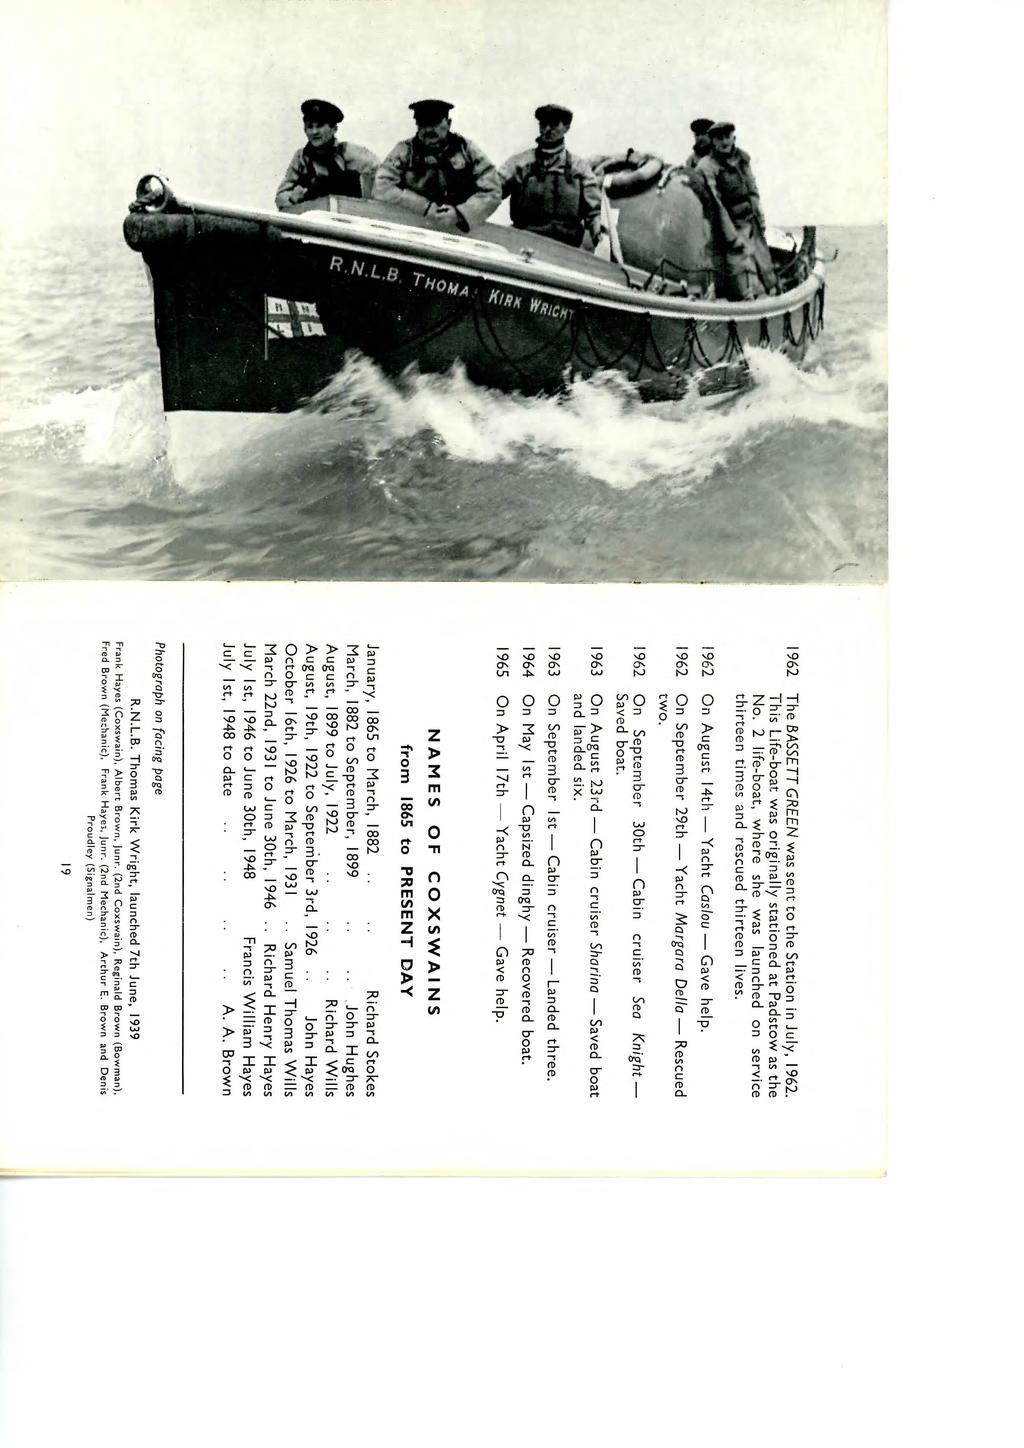 1962 The BASSETT GREEN was sent to the Station in July, 1962. This Life-boat was originally stationed at Padstow as the No.